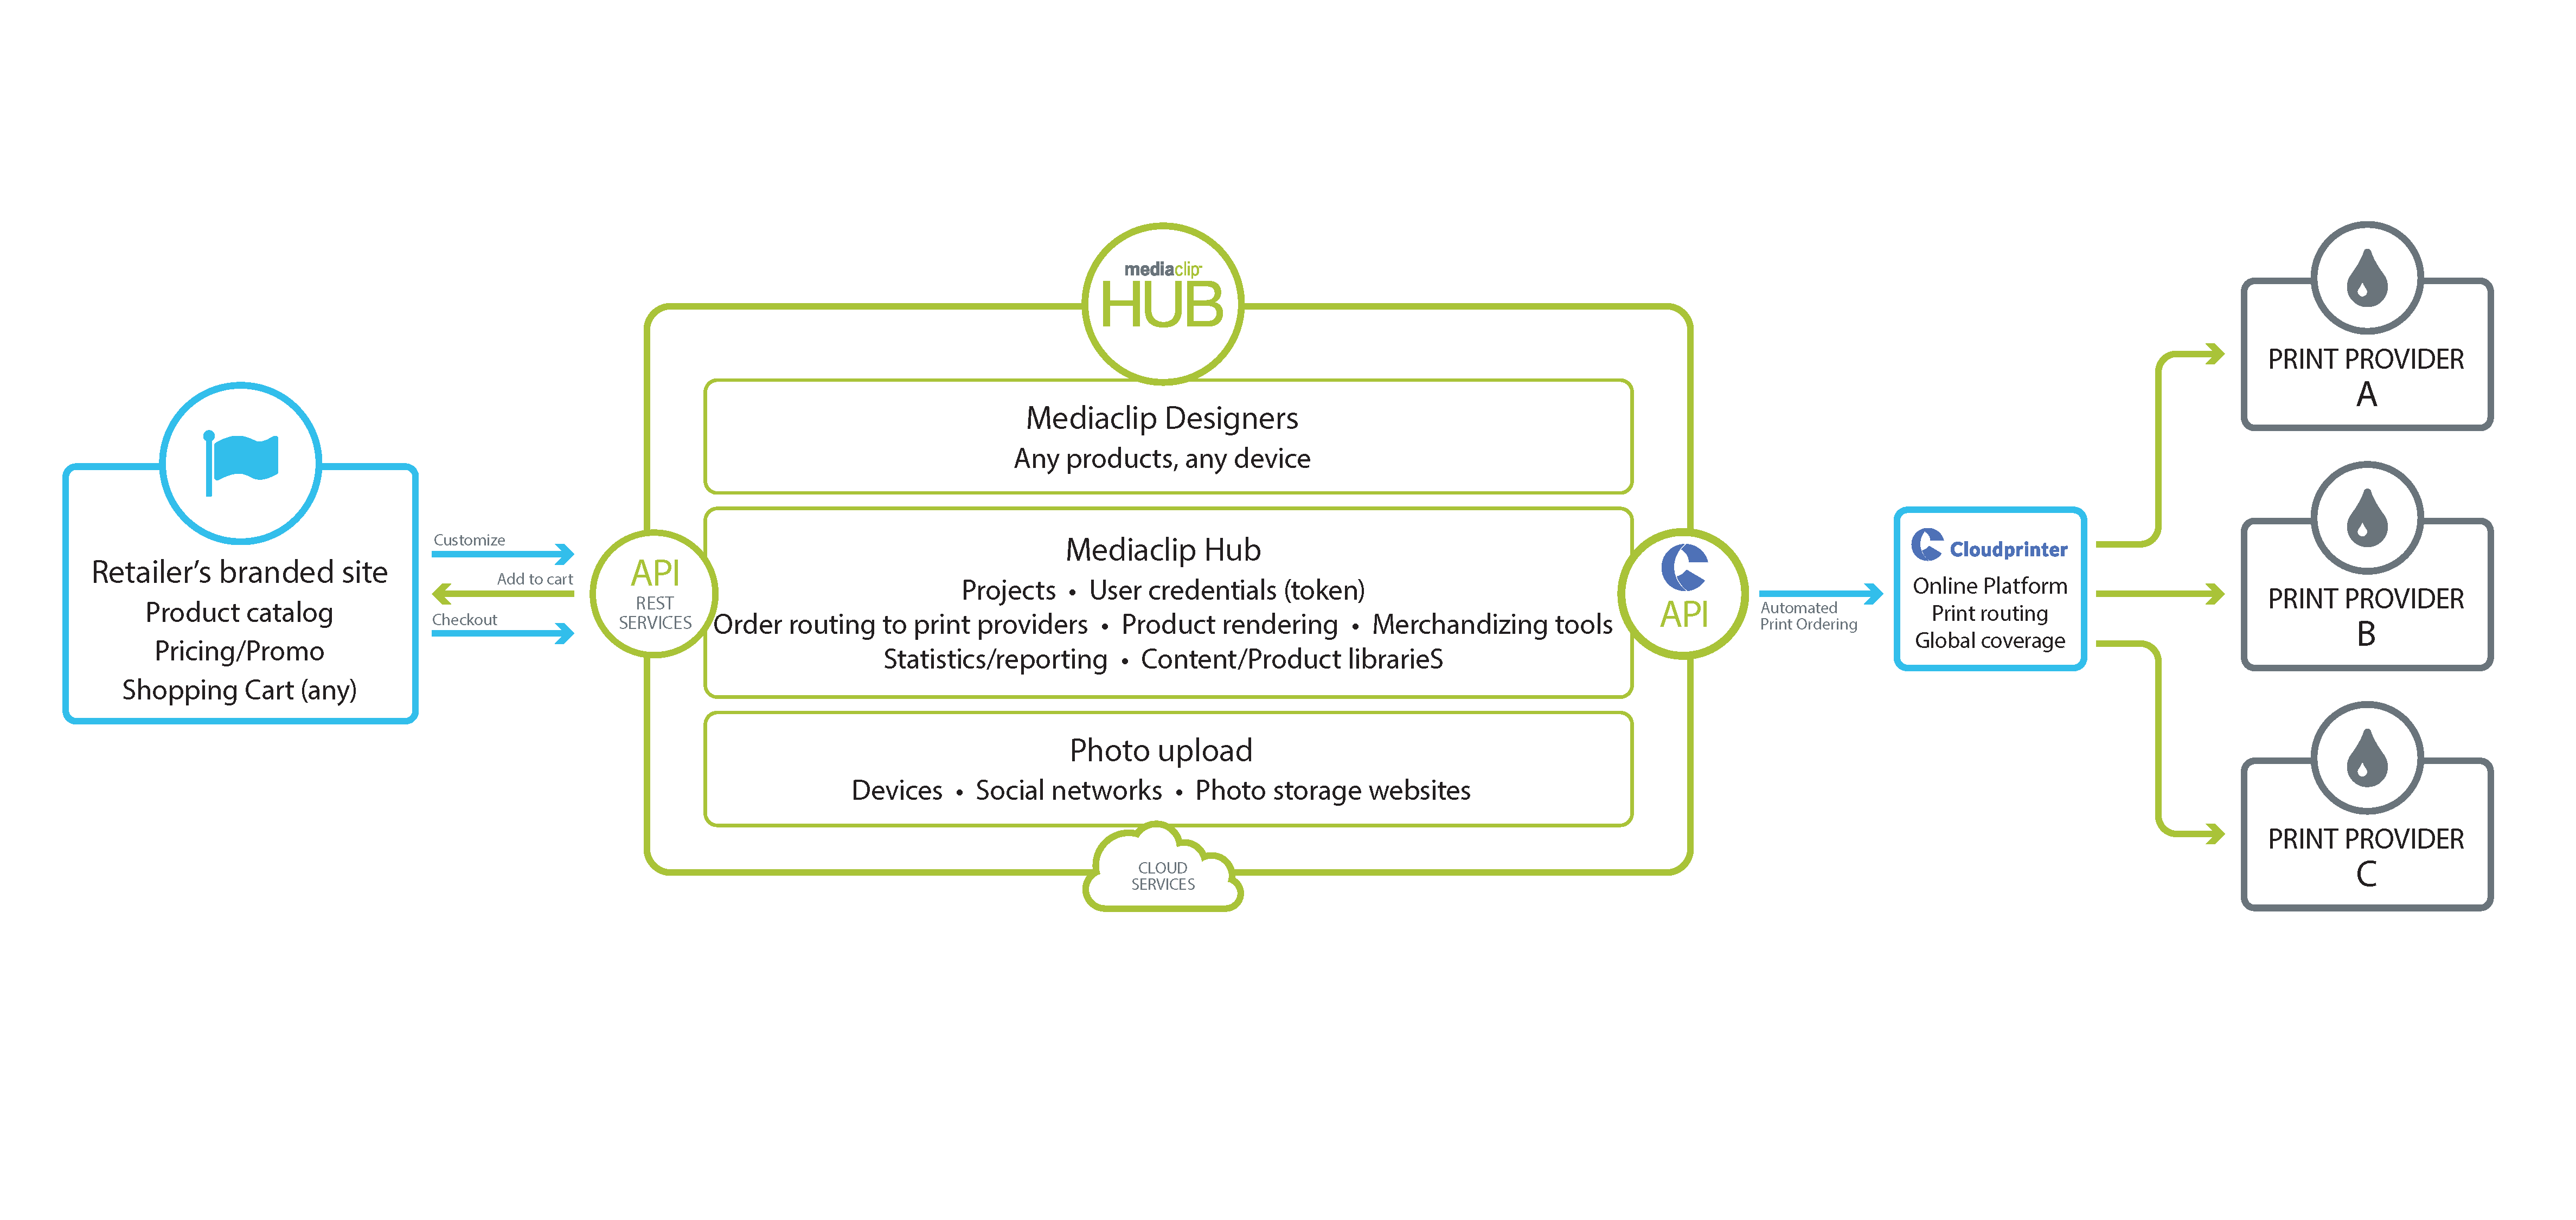 Cloudprinter connection diagram